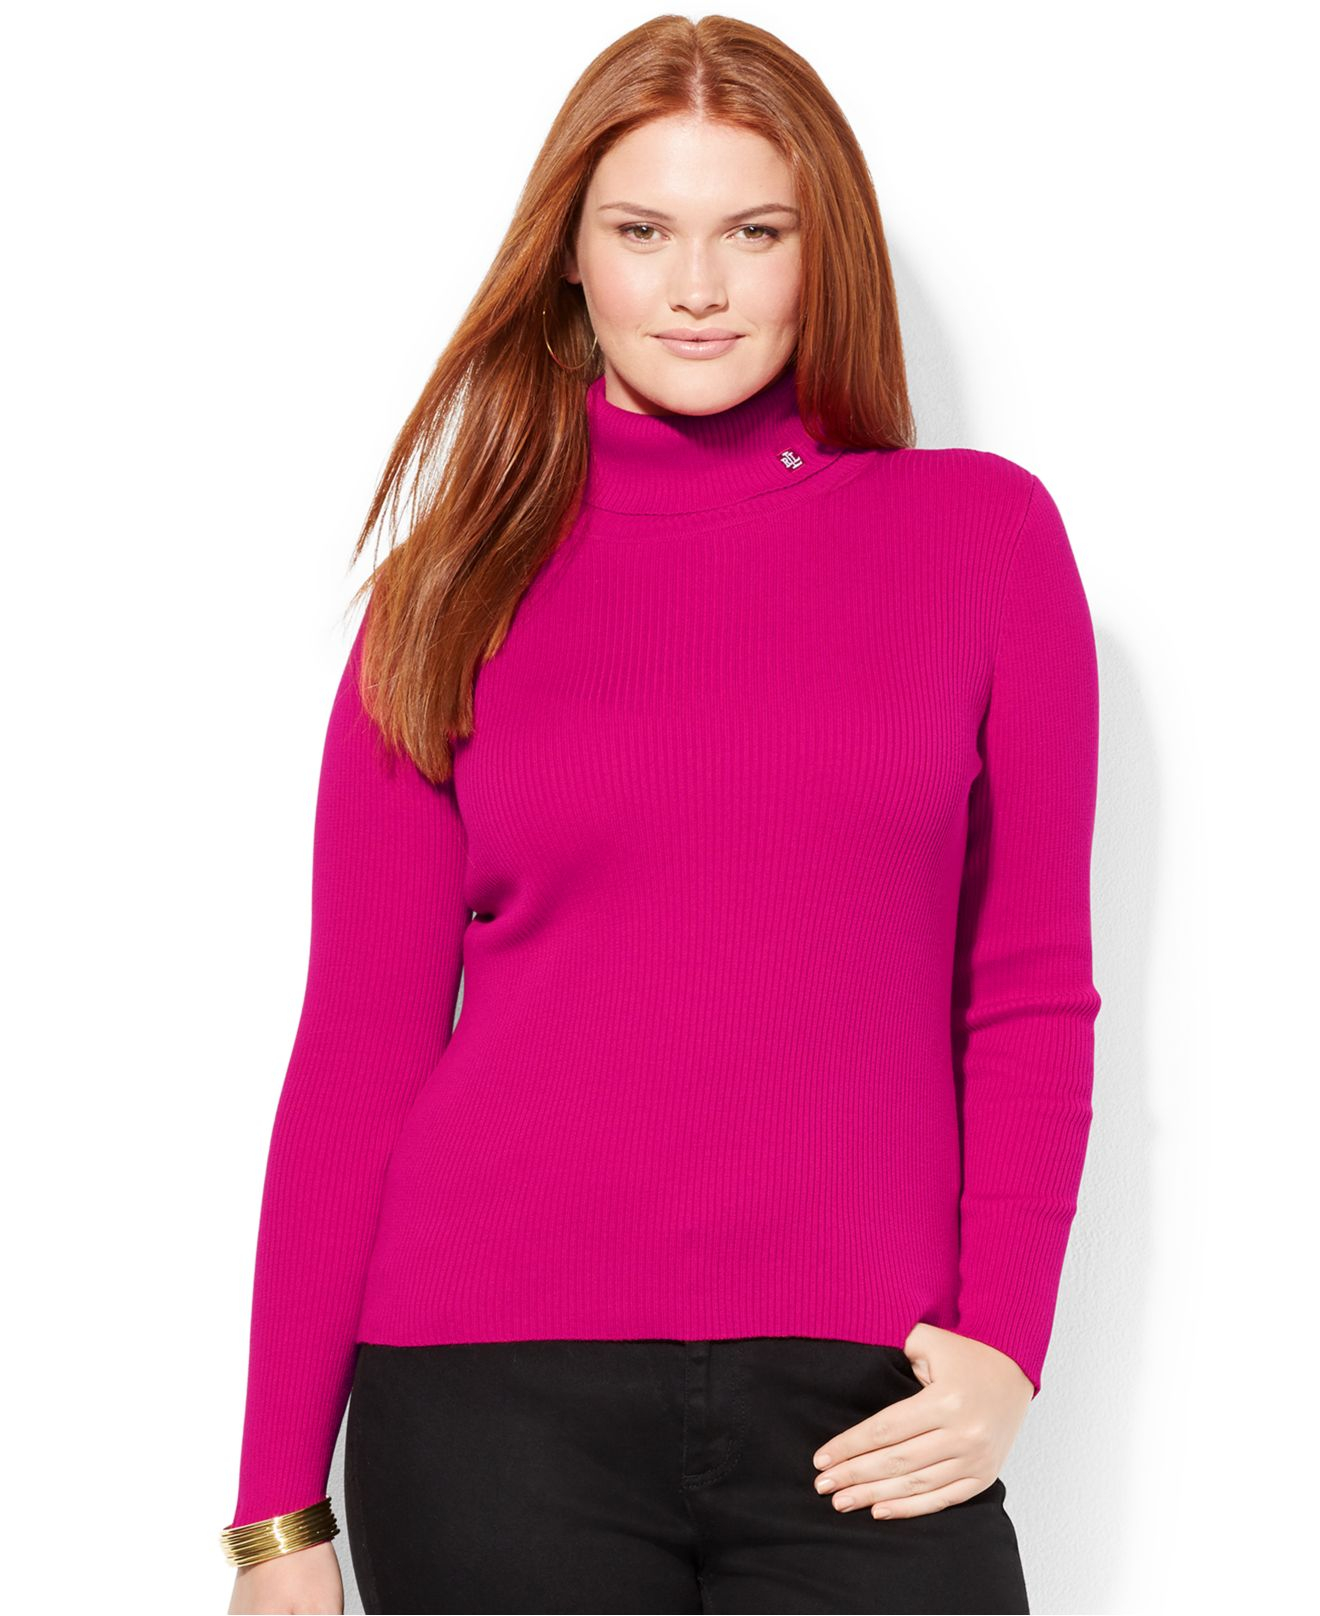 f9c3c754e8d34 Lyst - Lauren by Ralph Lauren Plus Size Ribbed Turtleneck Sweater in ...